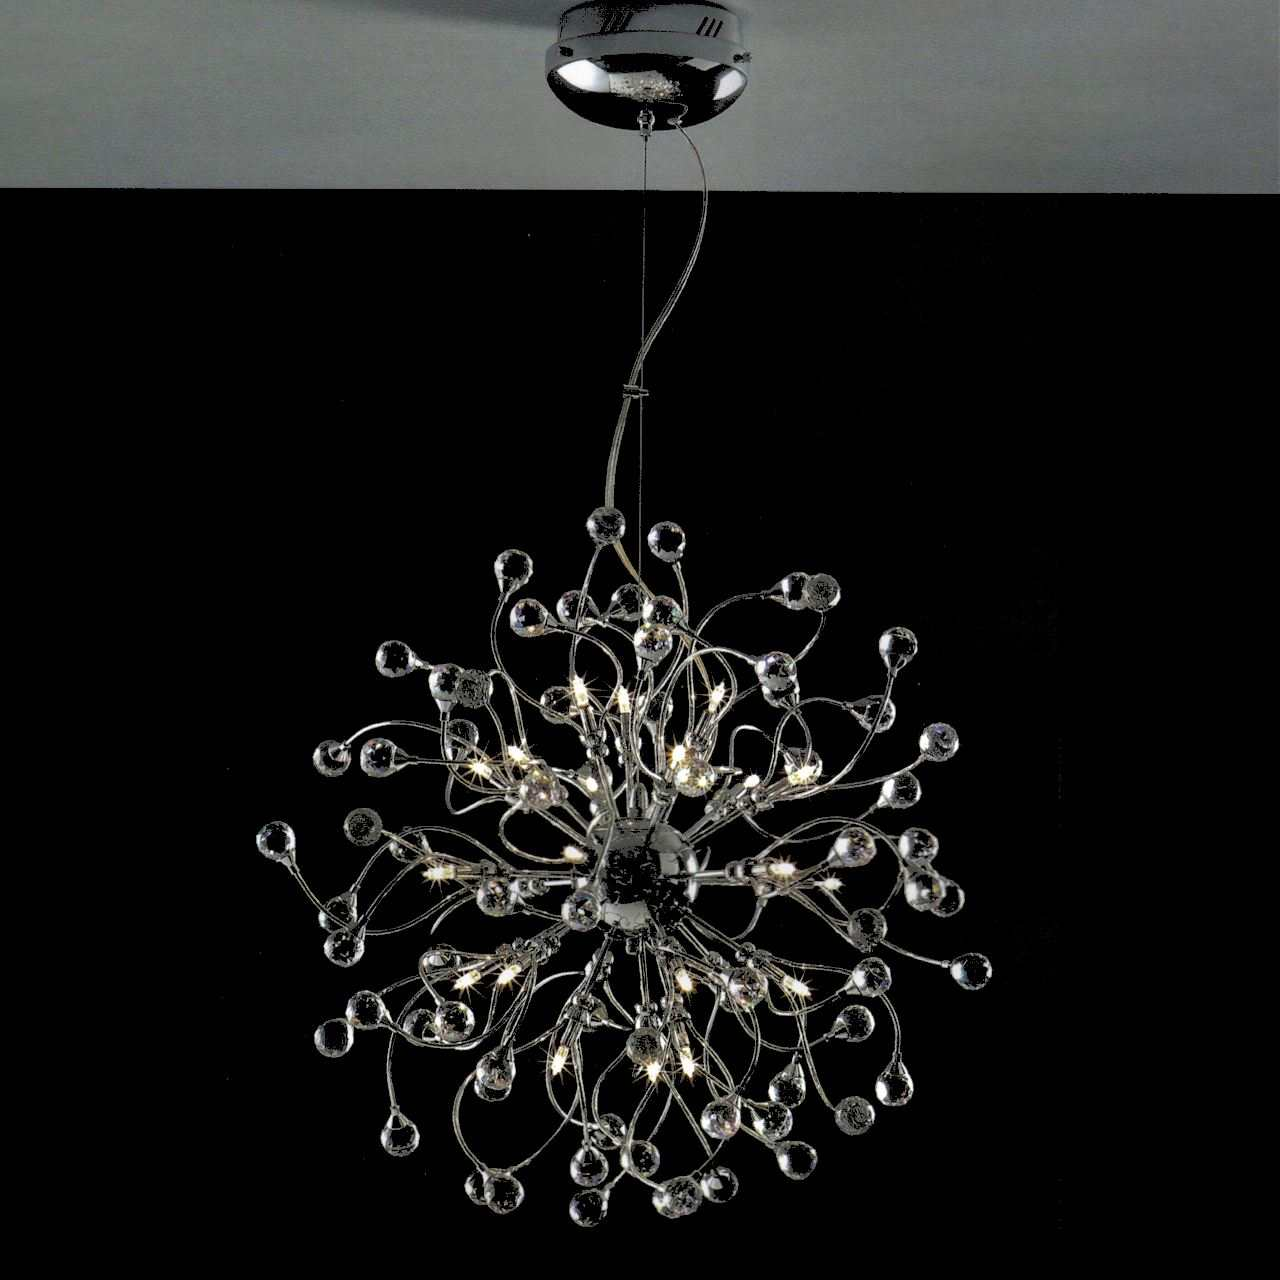 Brizzo lighting stores 24 sfera modern crystal round for Modern lighting fixtures chandeliers